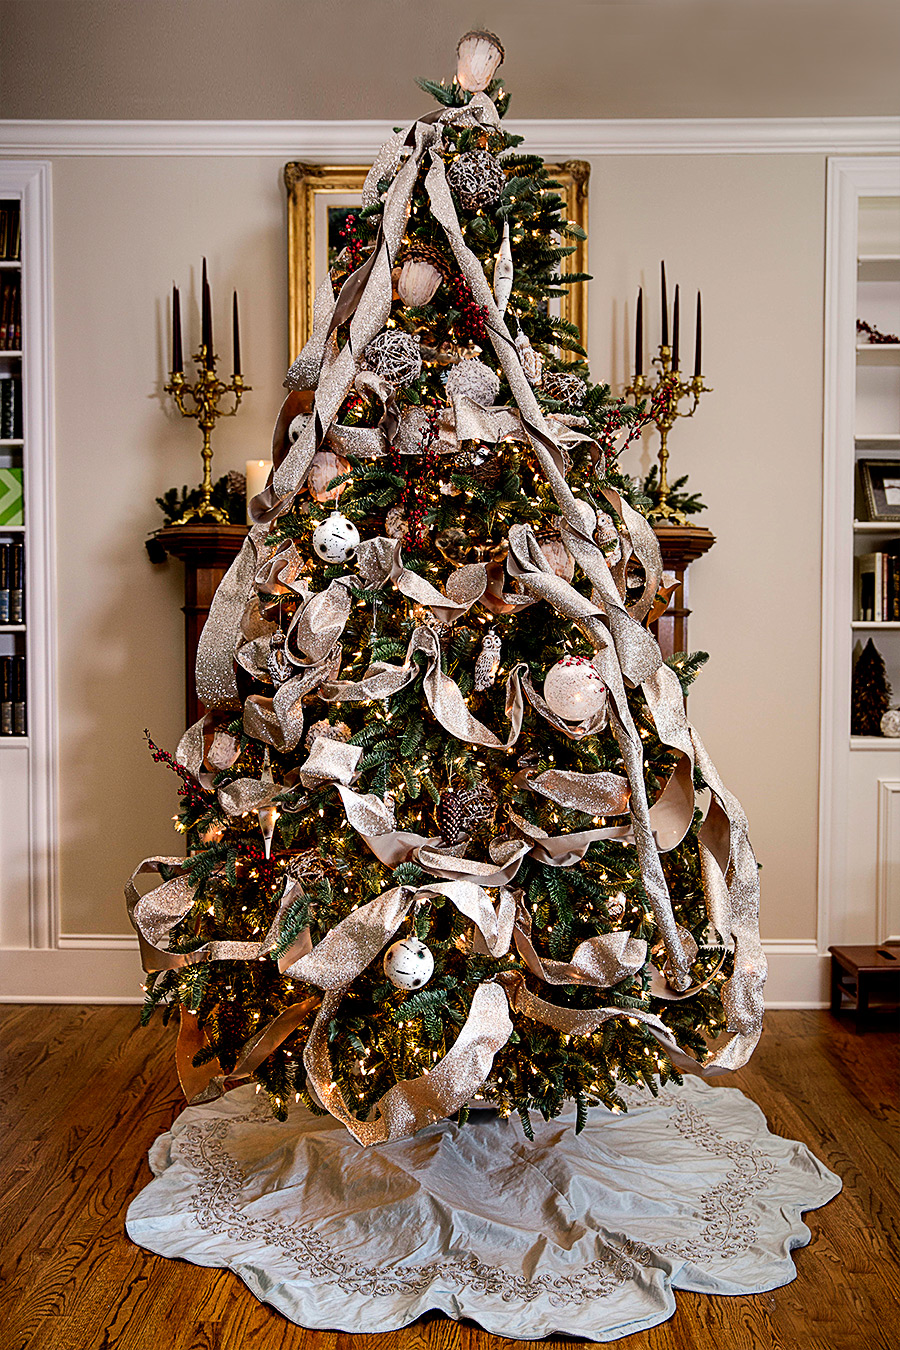 We're Giving Christmas Away Balsam Hill Artificial